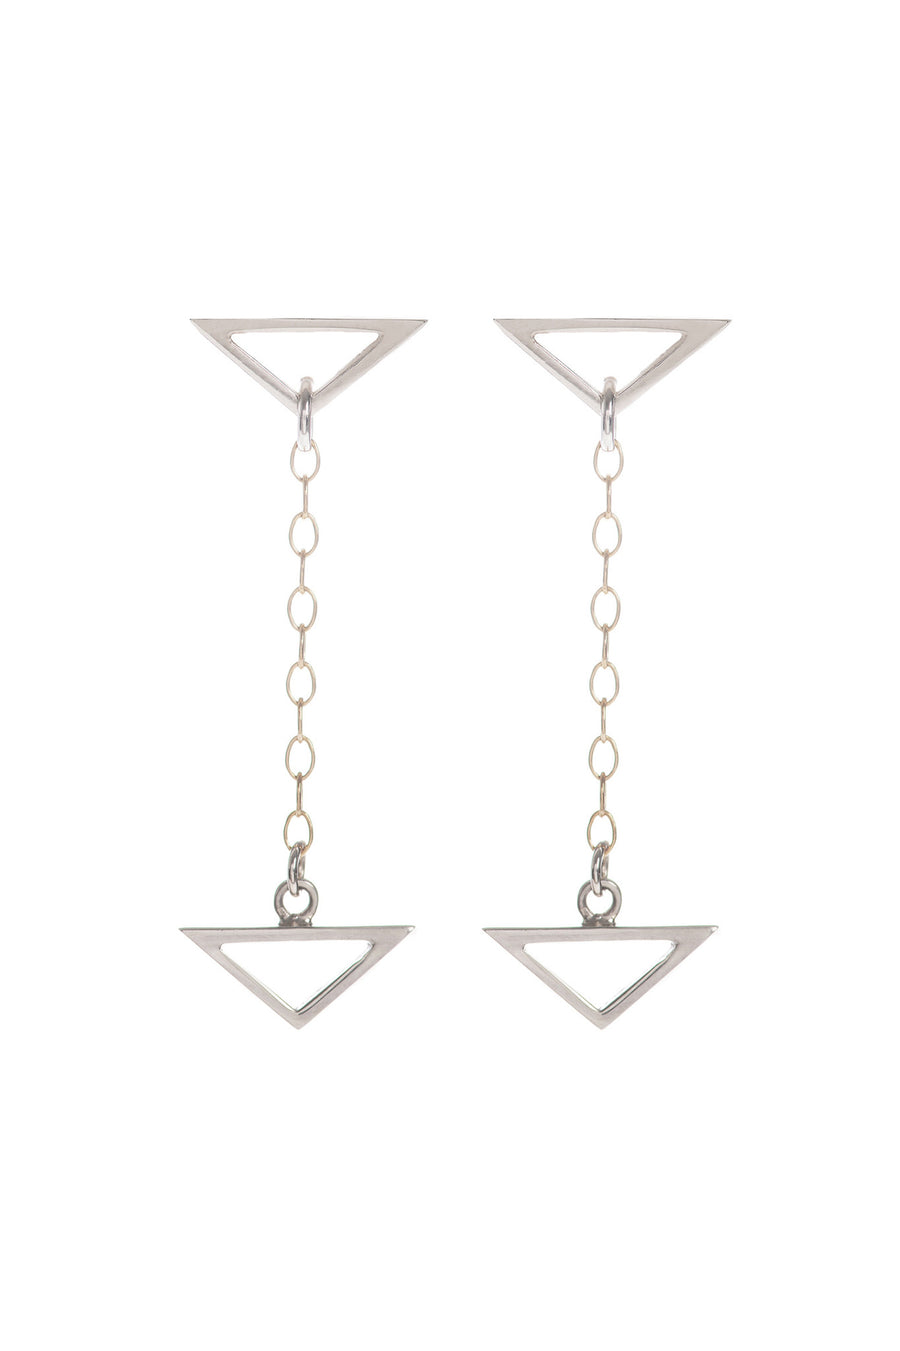 Hang Loose, Silver Drop Earrings